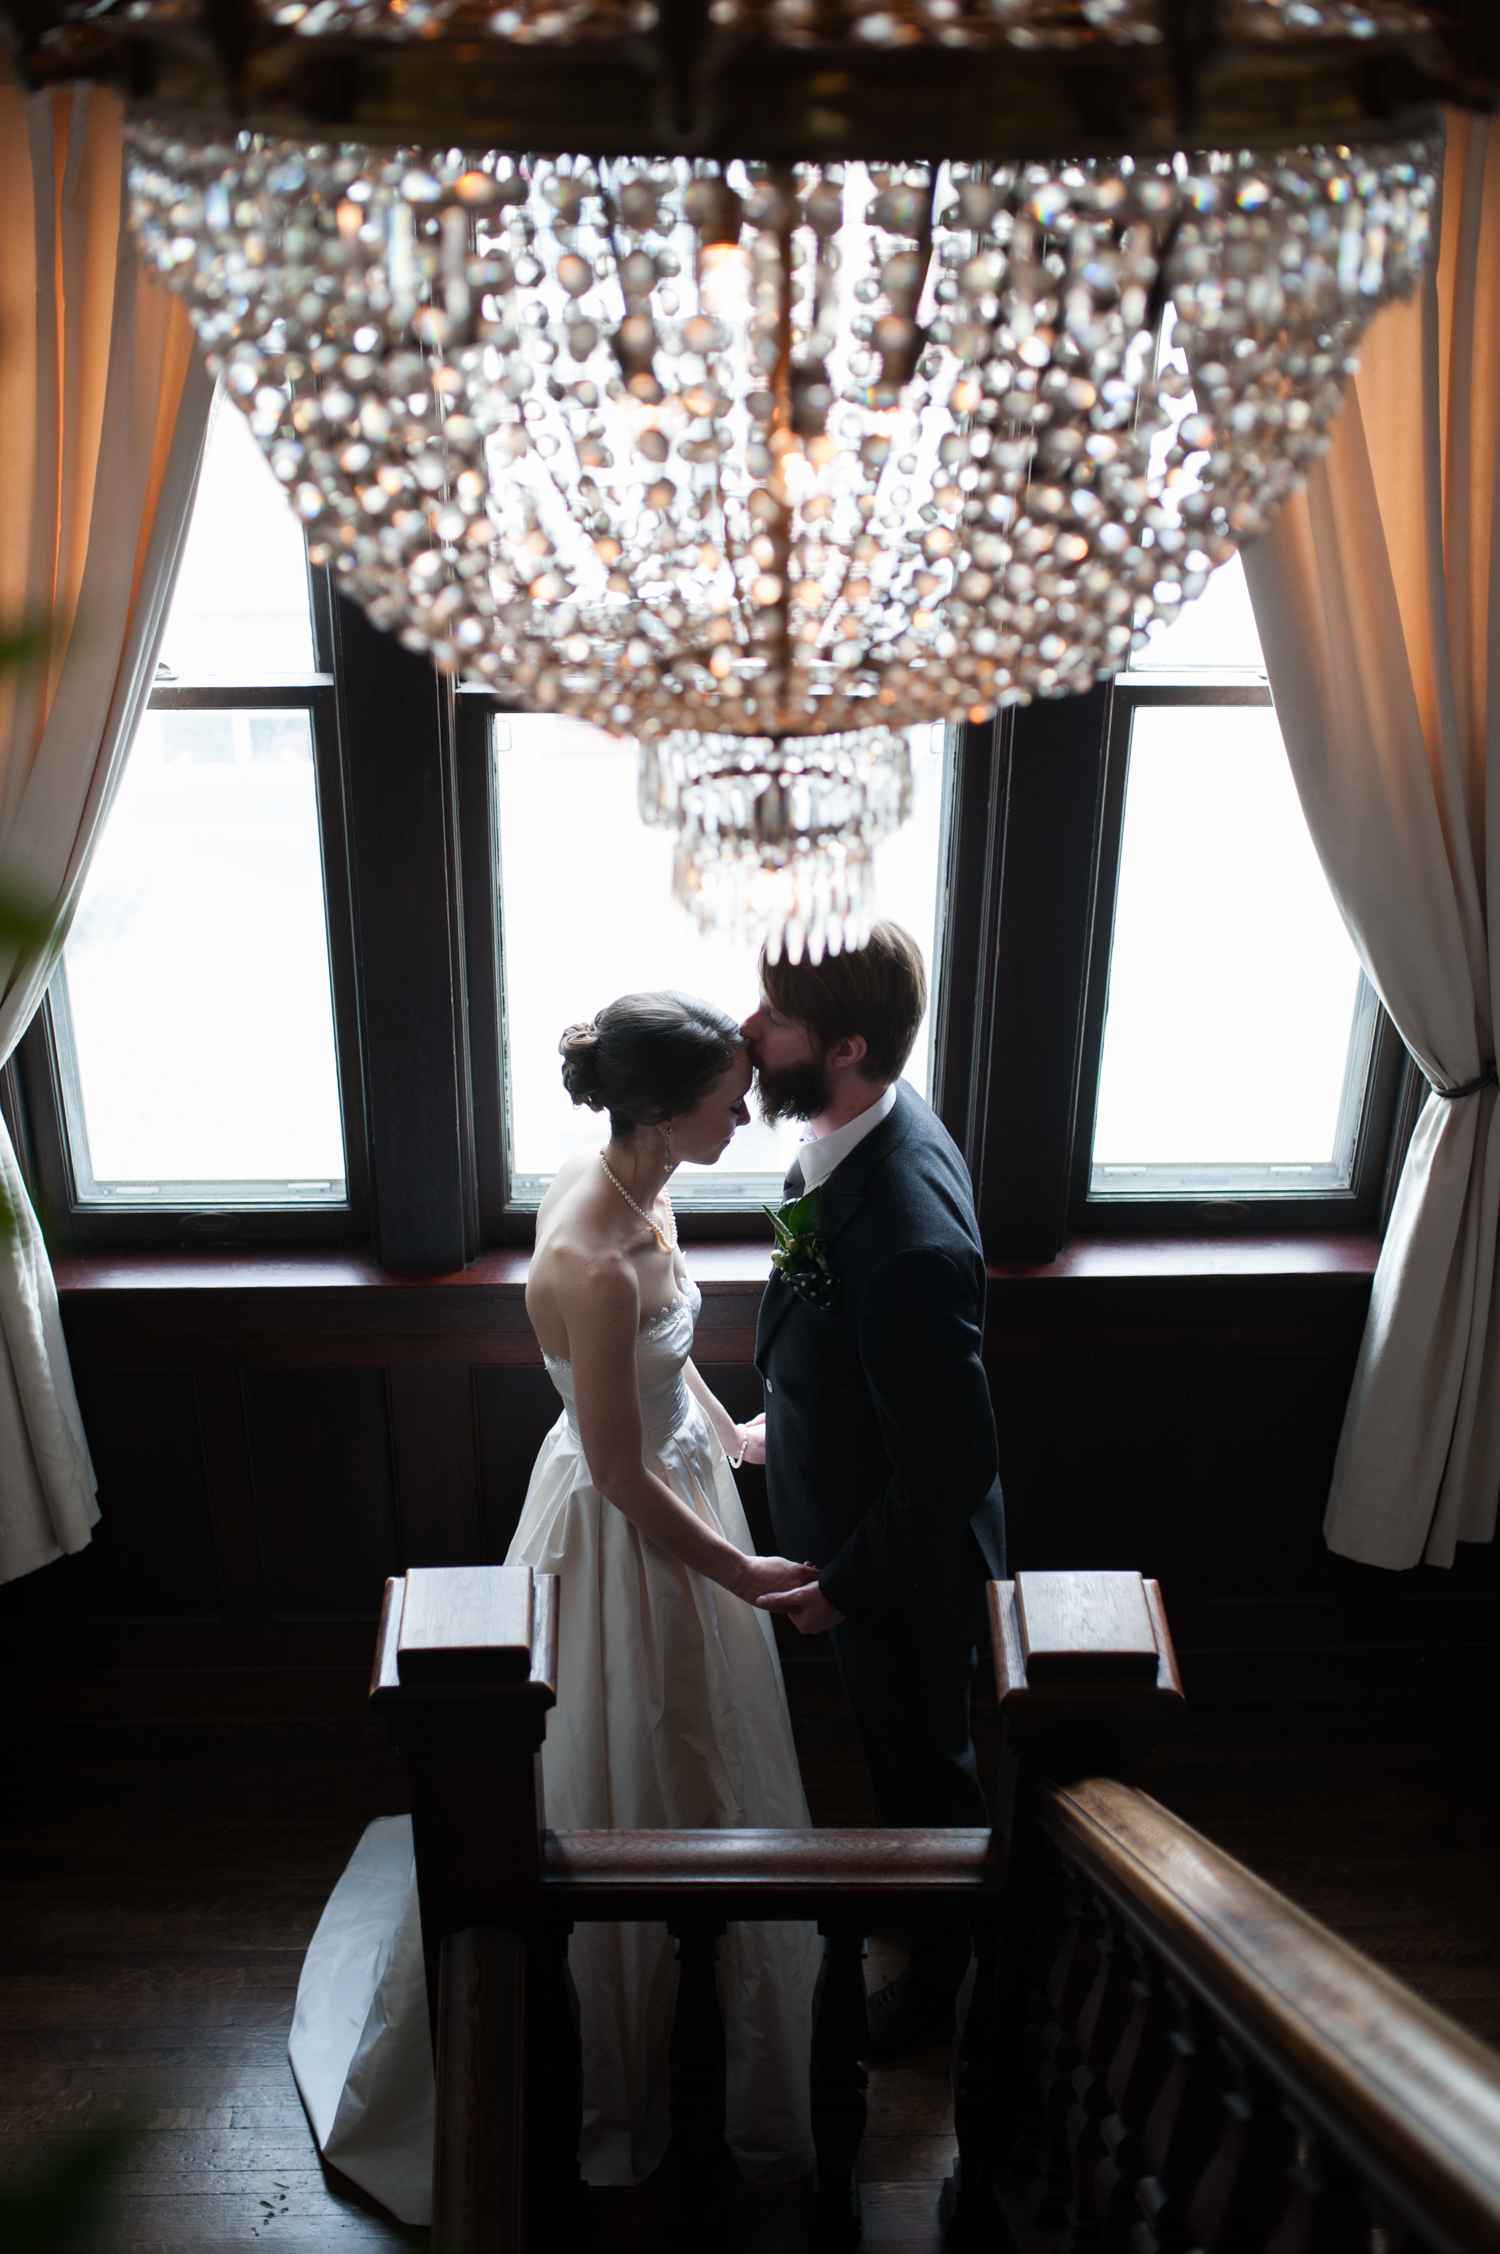 groom_kissing_brides_forehead_inside_fancy_minneapolis_wedding_venue_with_chandelier_and_windows.jpeg